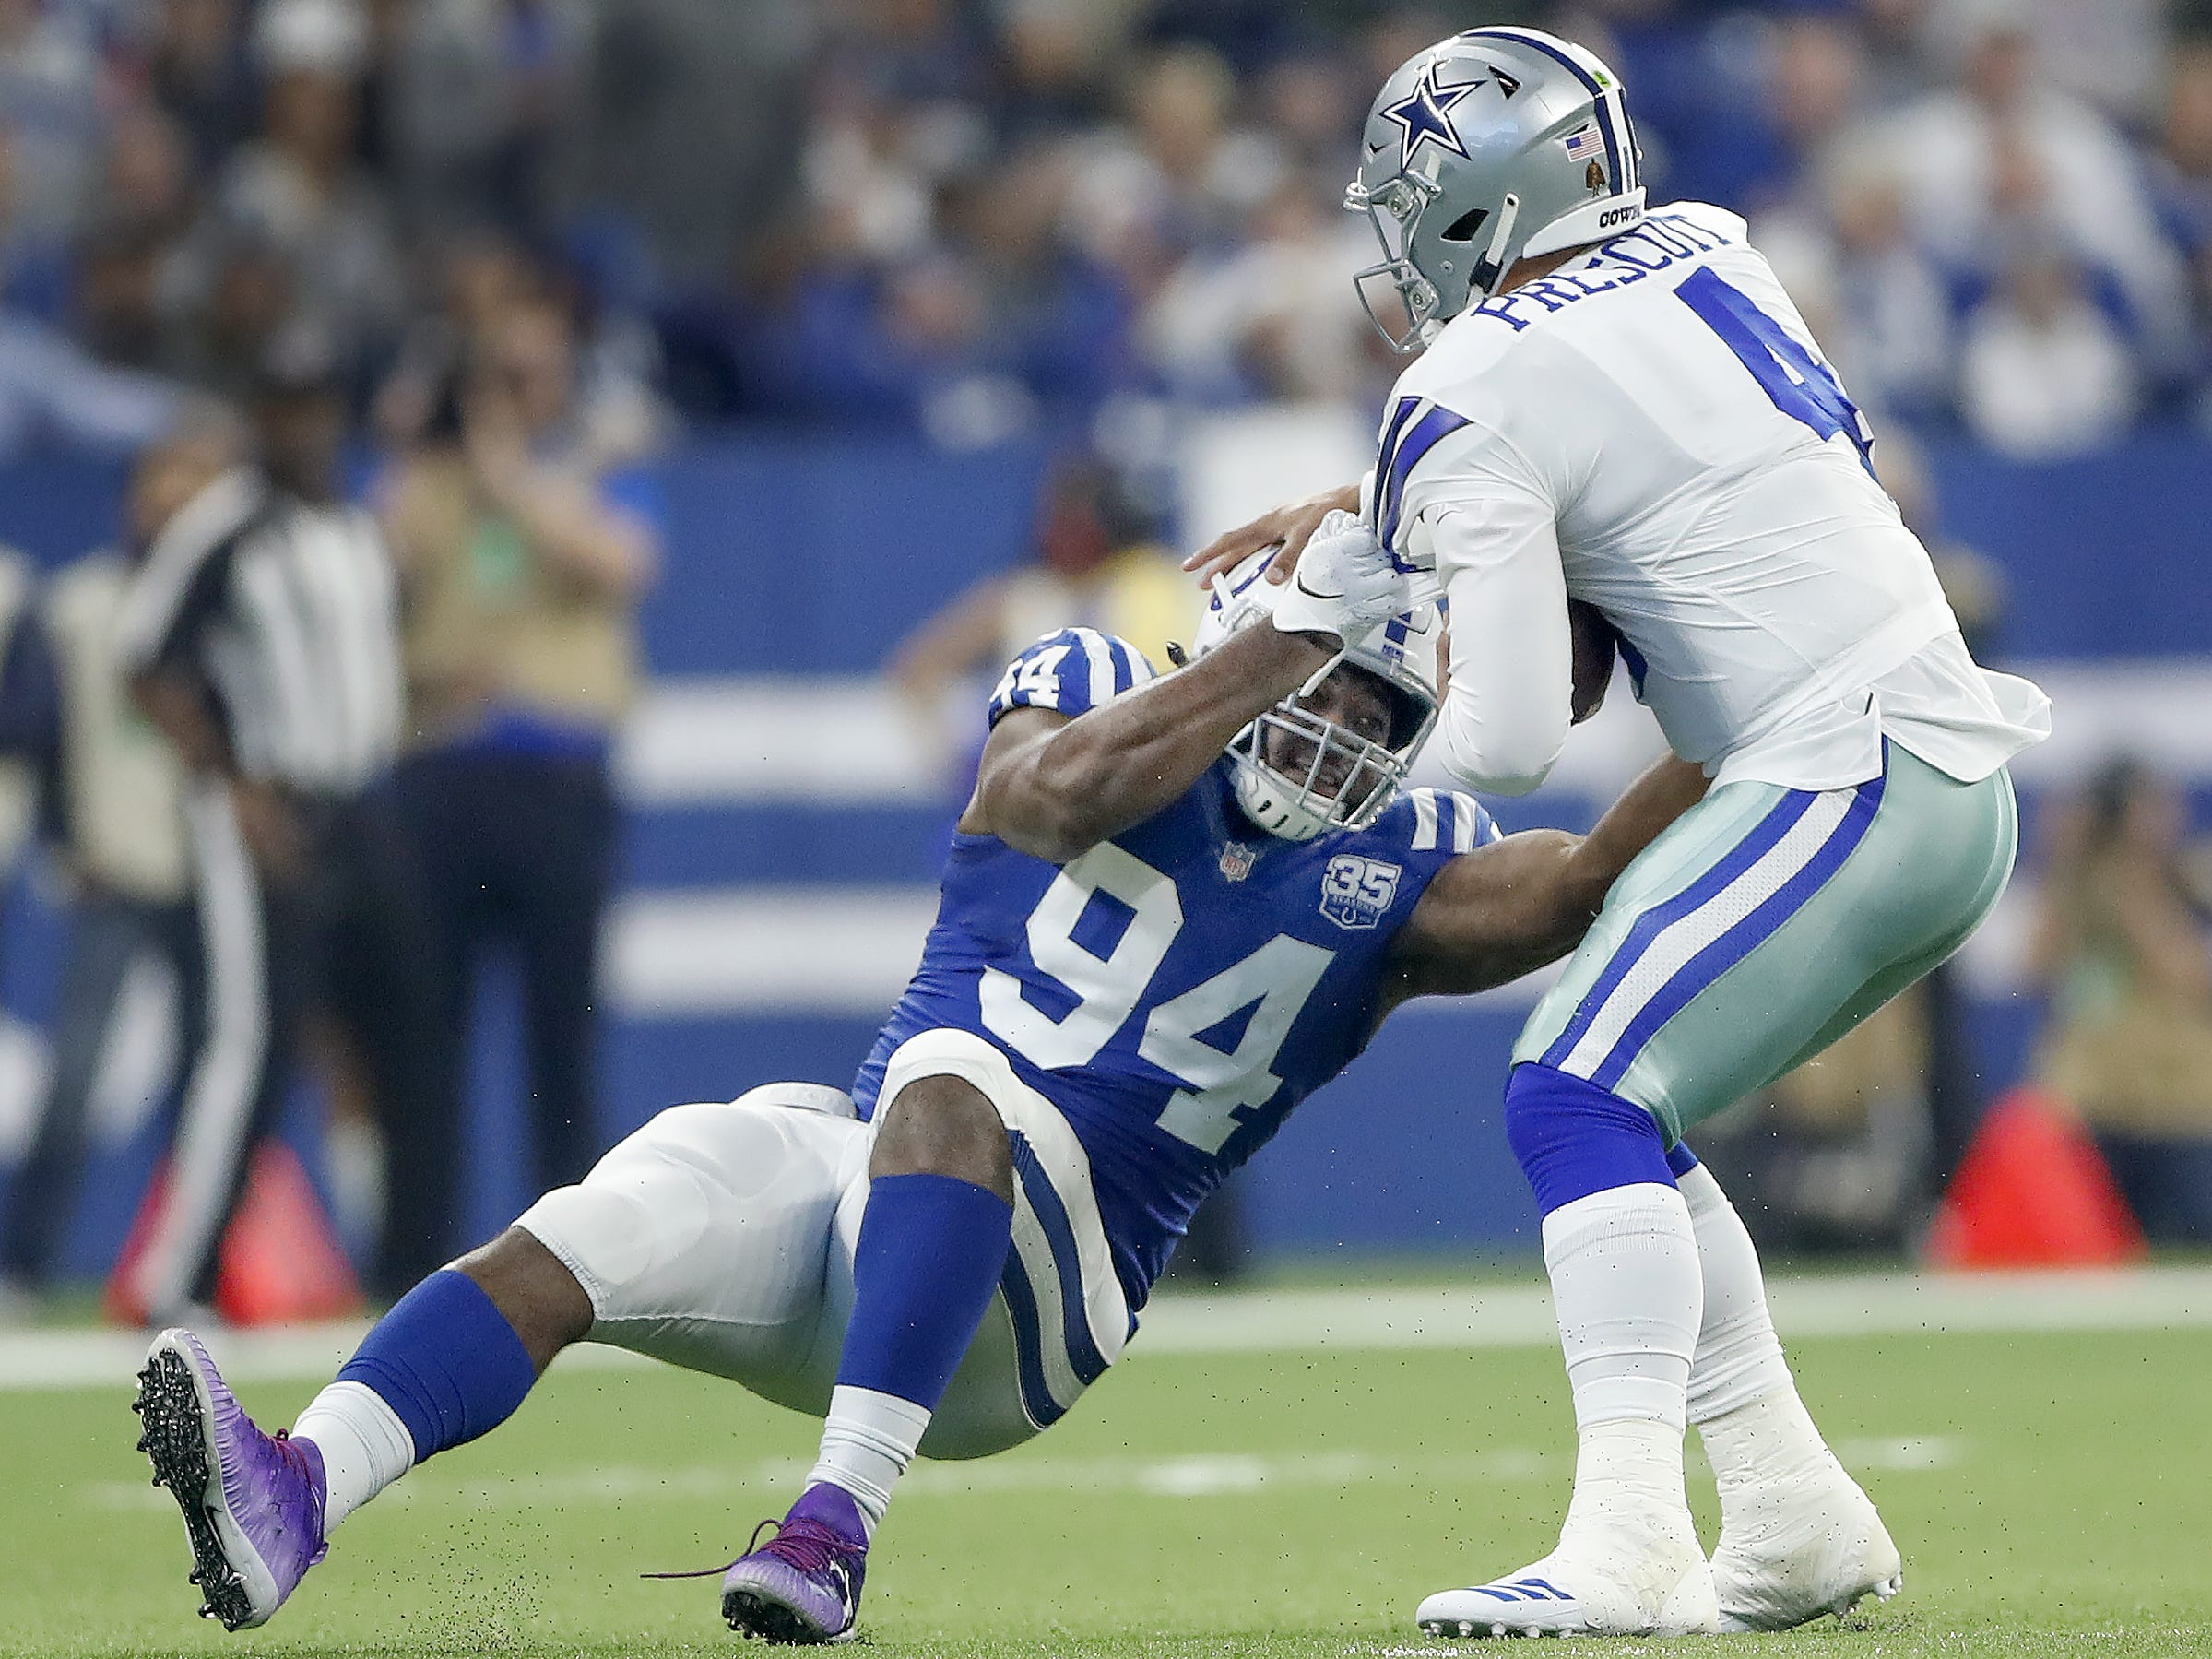 Indianapolis Colts defensive end Tyquan Lewis (94) sacks Dallas Cowboys quarterback Dak Prescott (4) in the first half of their game at Lucas Oil Stadium on Sunday, Dec. 16, 2018.